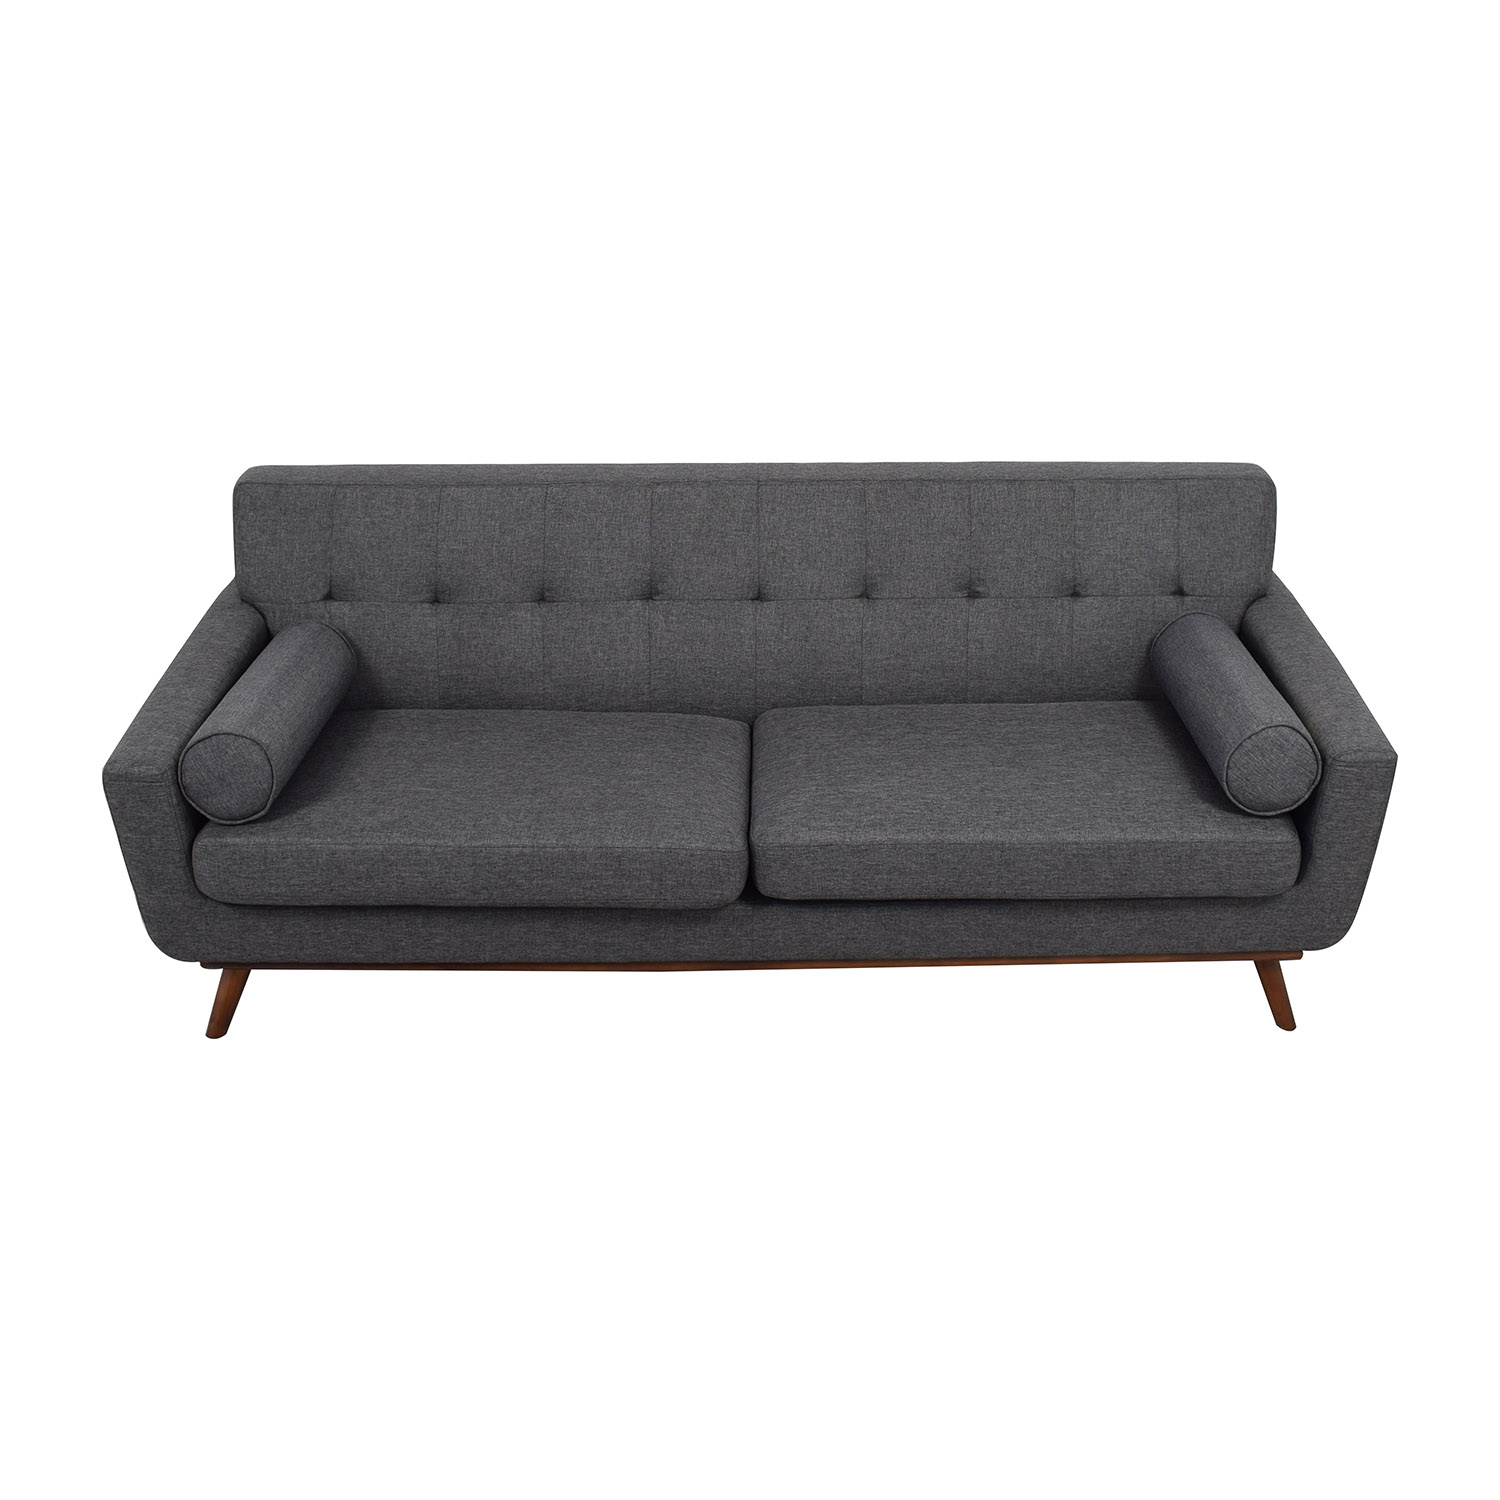 69 off crate and barrel crate barrel simone daybed for In mod furniture